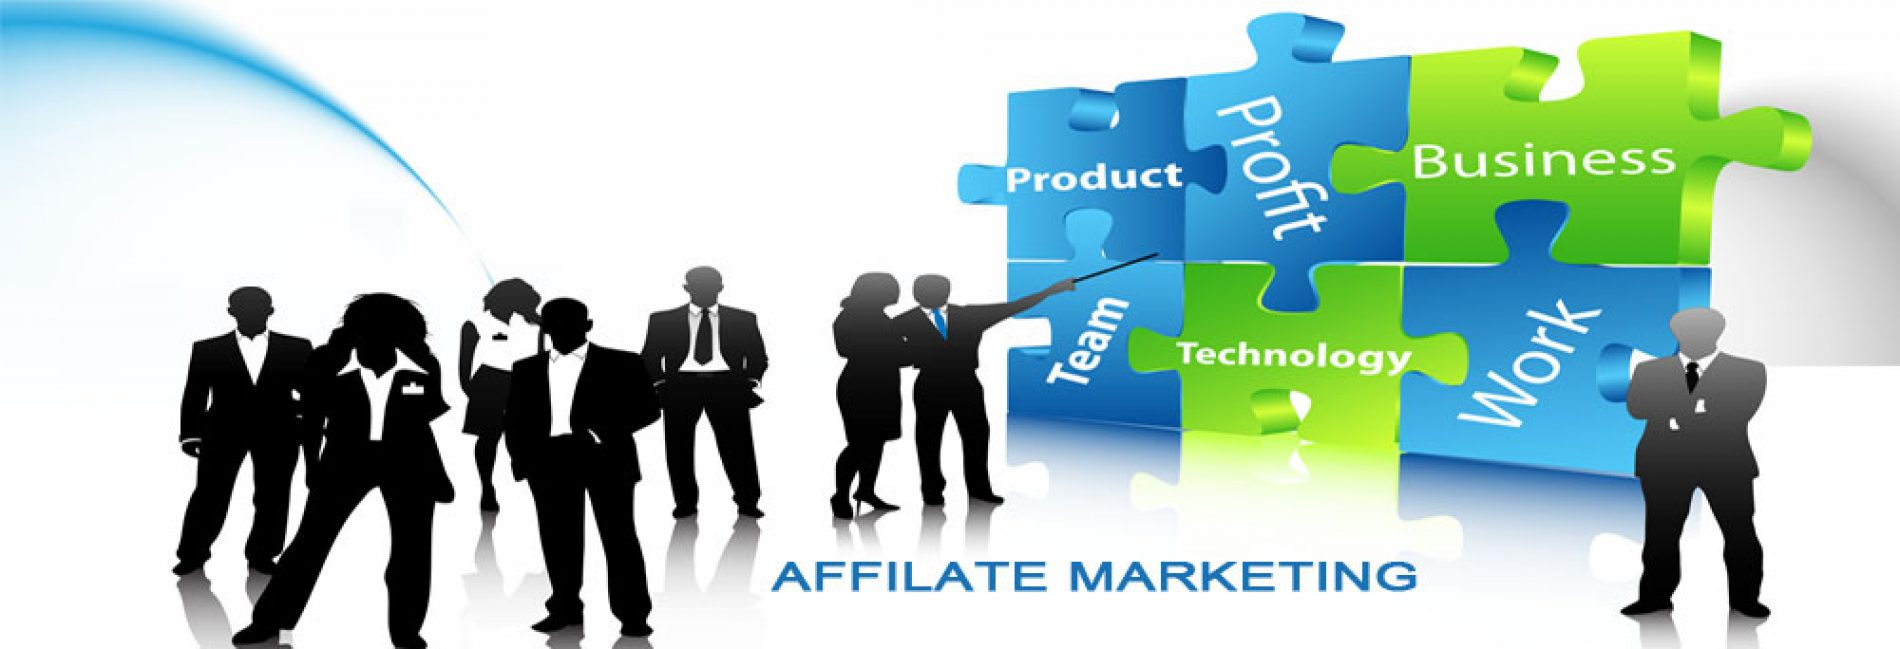 How To Make Money In Marketing: Affiliate Marketing Online